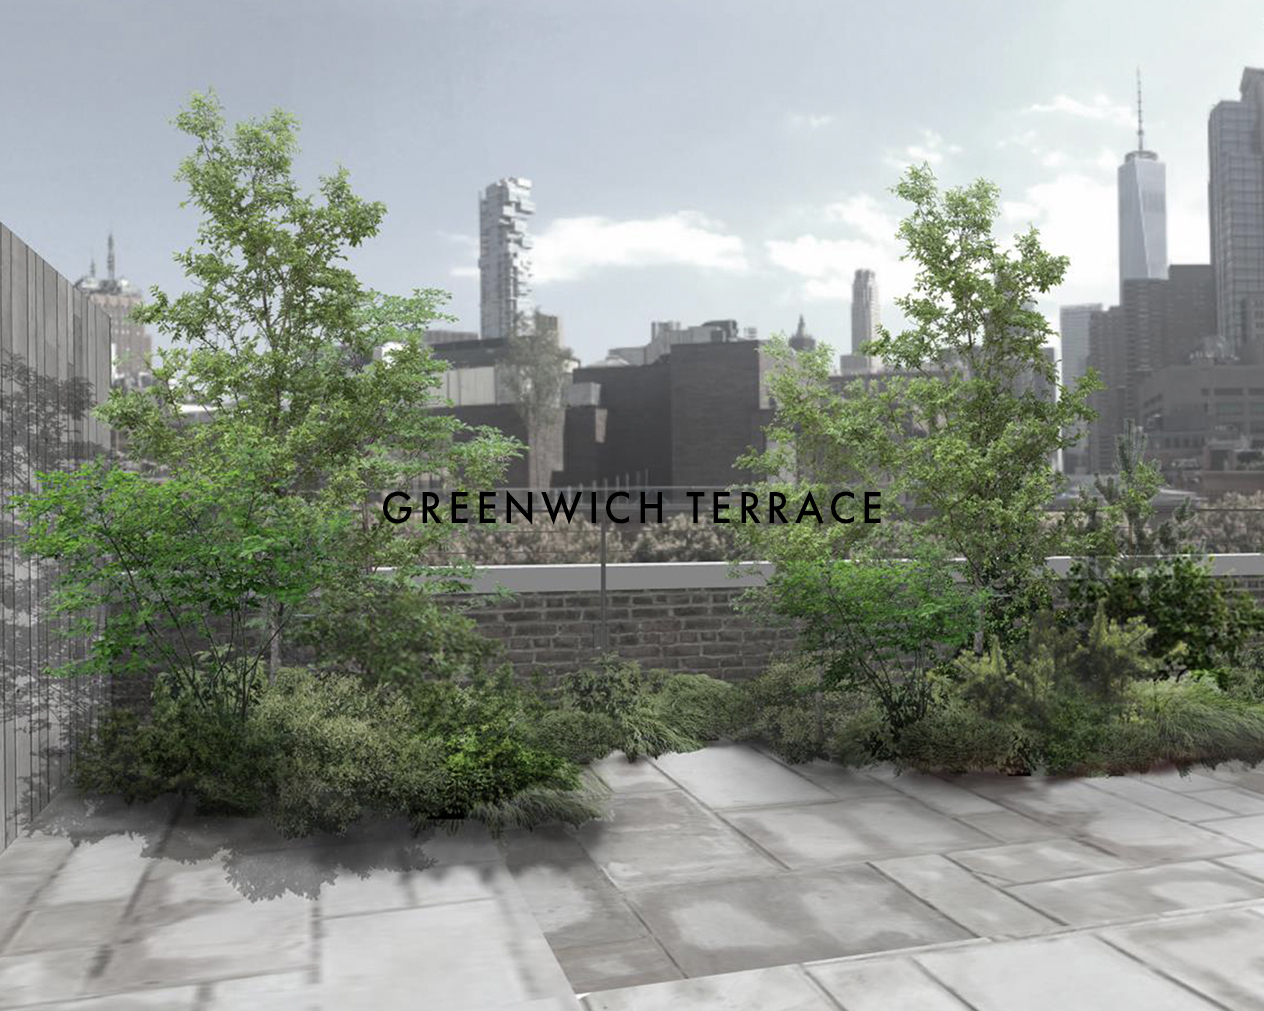 res2-greenwichterrace copy.jpg